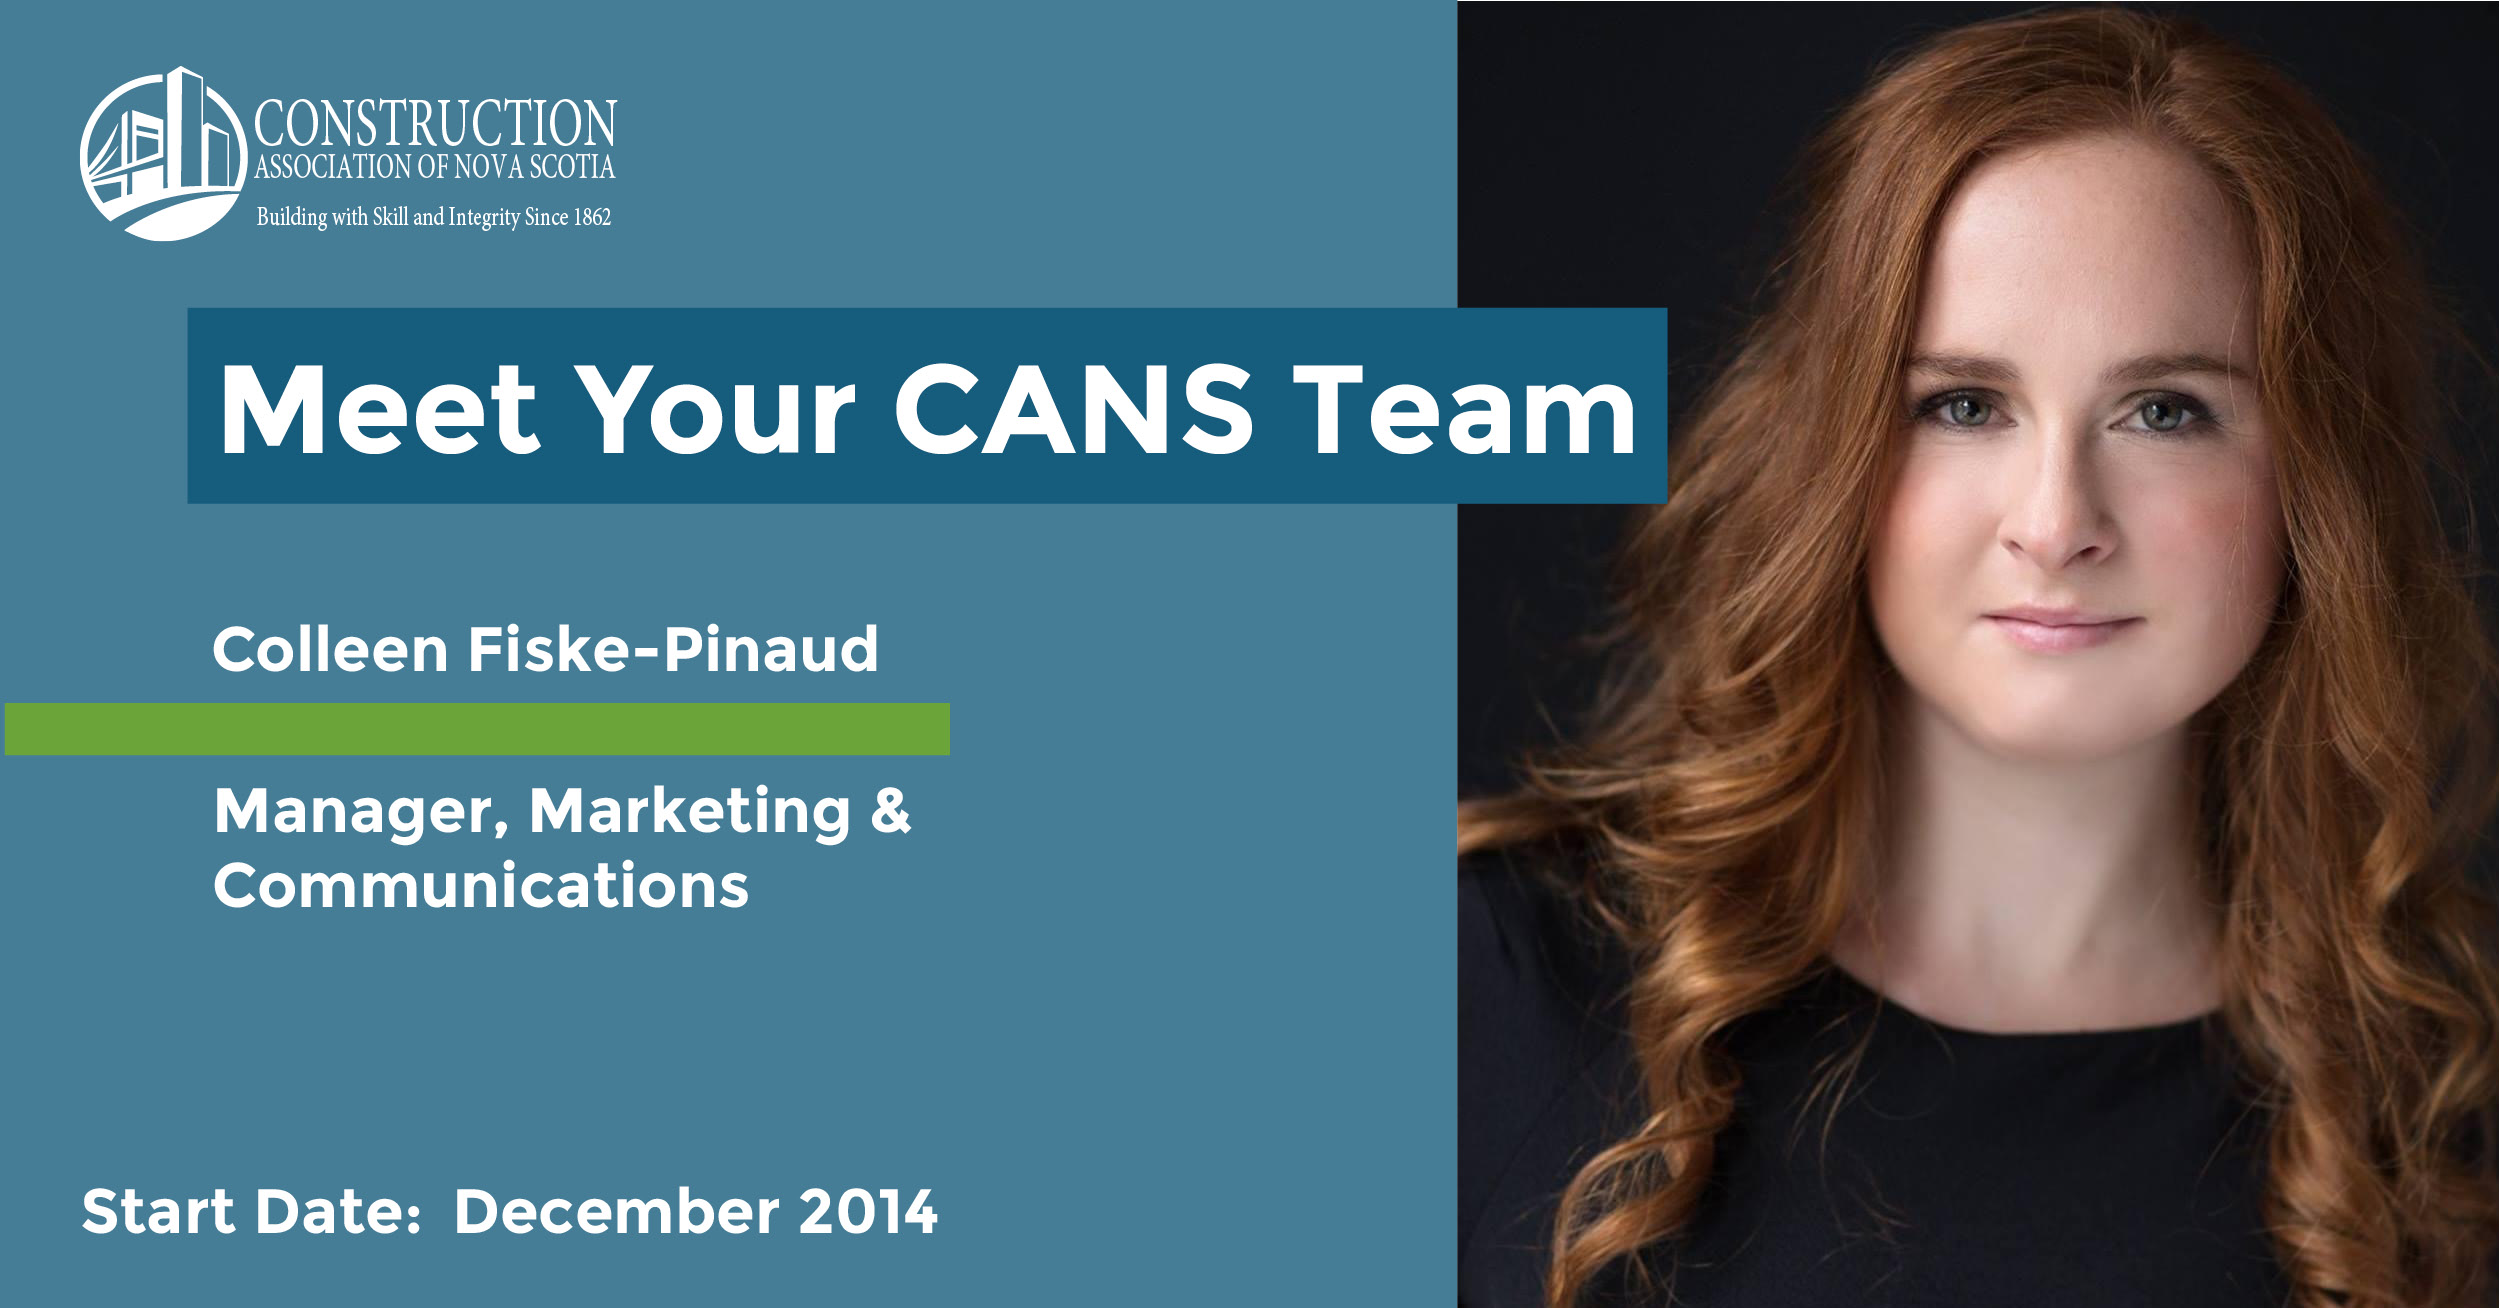 Headline reads Meet Your CANS Team. Colleen Fiske-Pinaud, Manager, Communications & Marketing. Start date: December 2014. Photo is a professional portrait of Colleen.